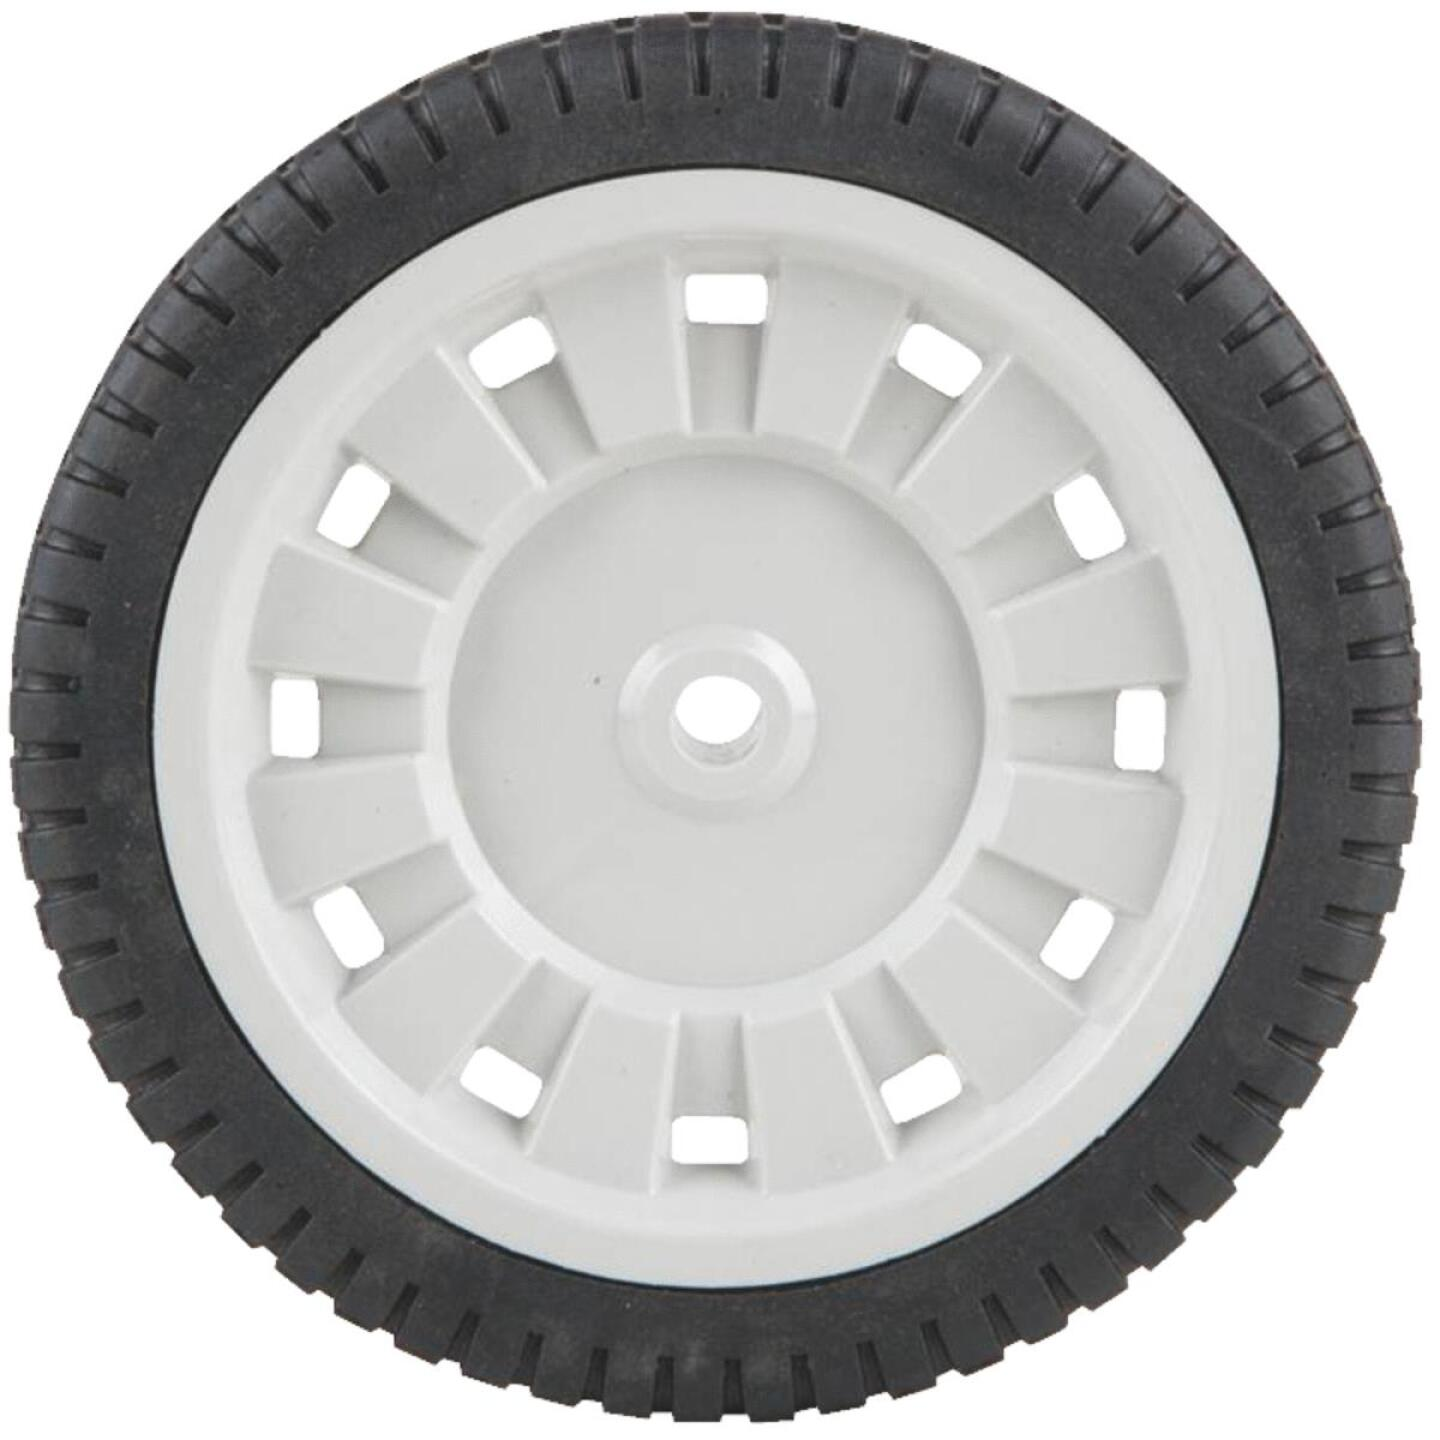 Arnold 8 In. Universal Mower Wheel Image 1